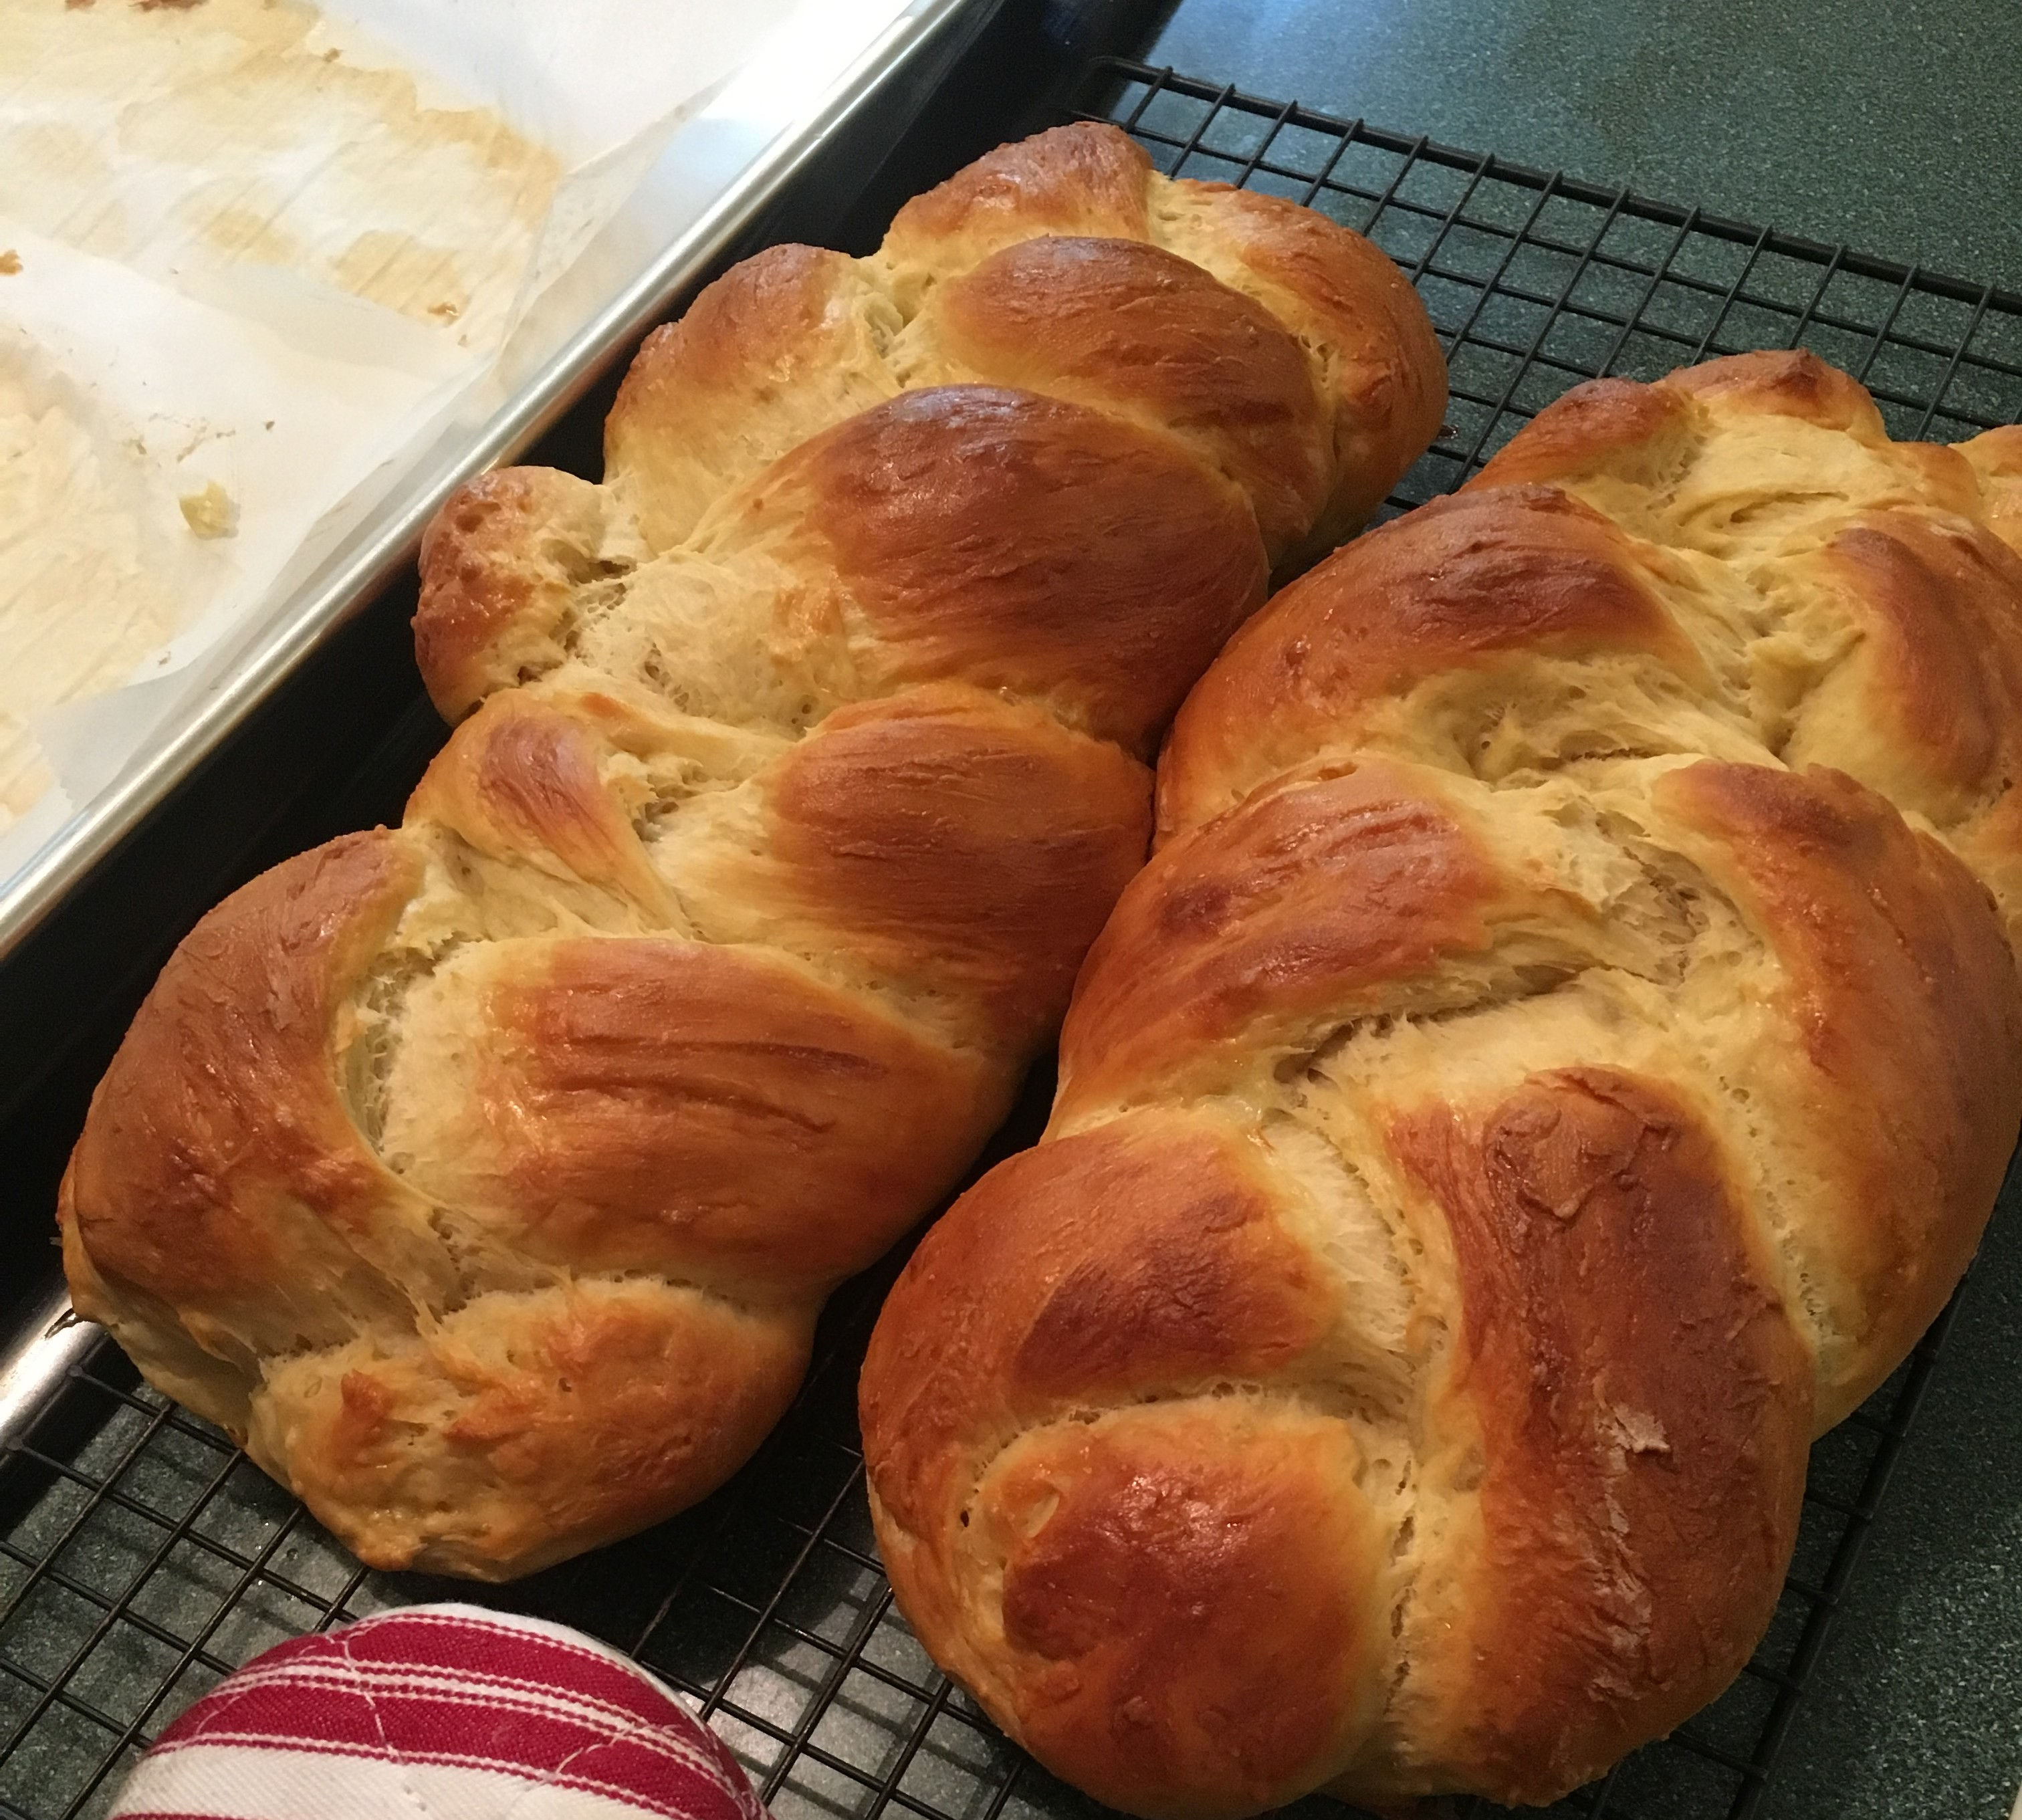 two loaves of fresh baked challah bread